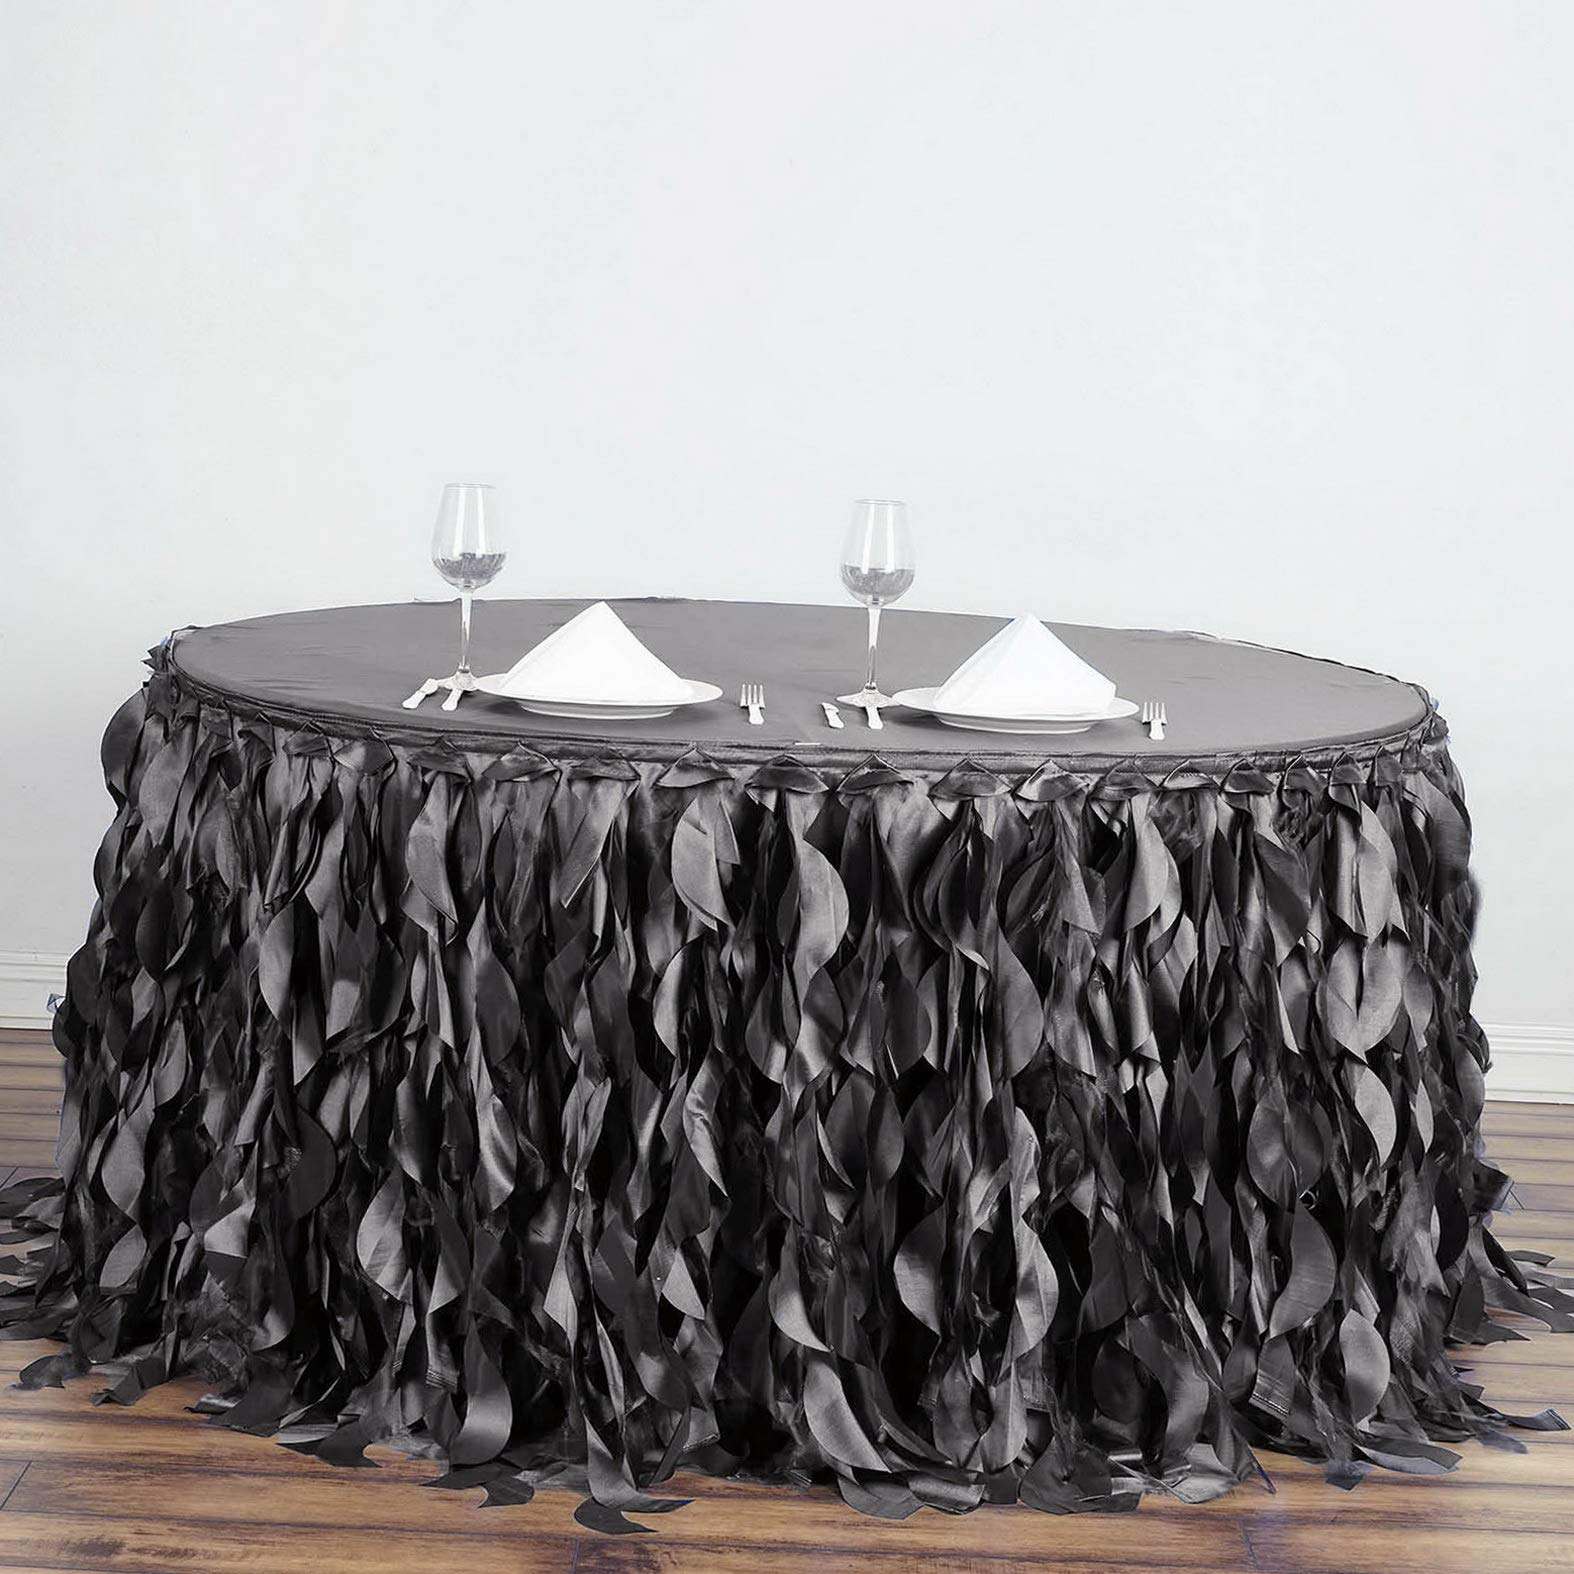 Mikash 17 feet x 29 Taffeta Curly Banquet Table Skirt Party Wedding Booth Decorations | Model WDDNGDCRTN - 18436 |